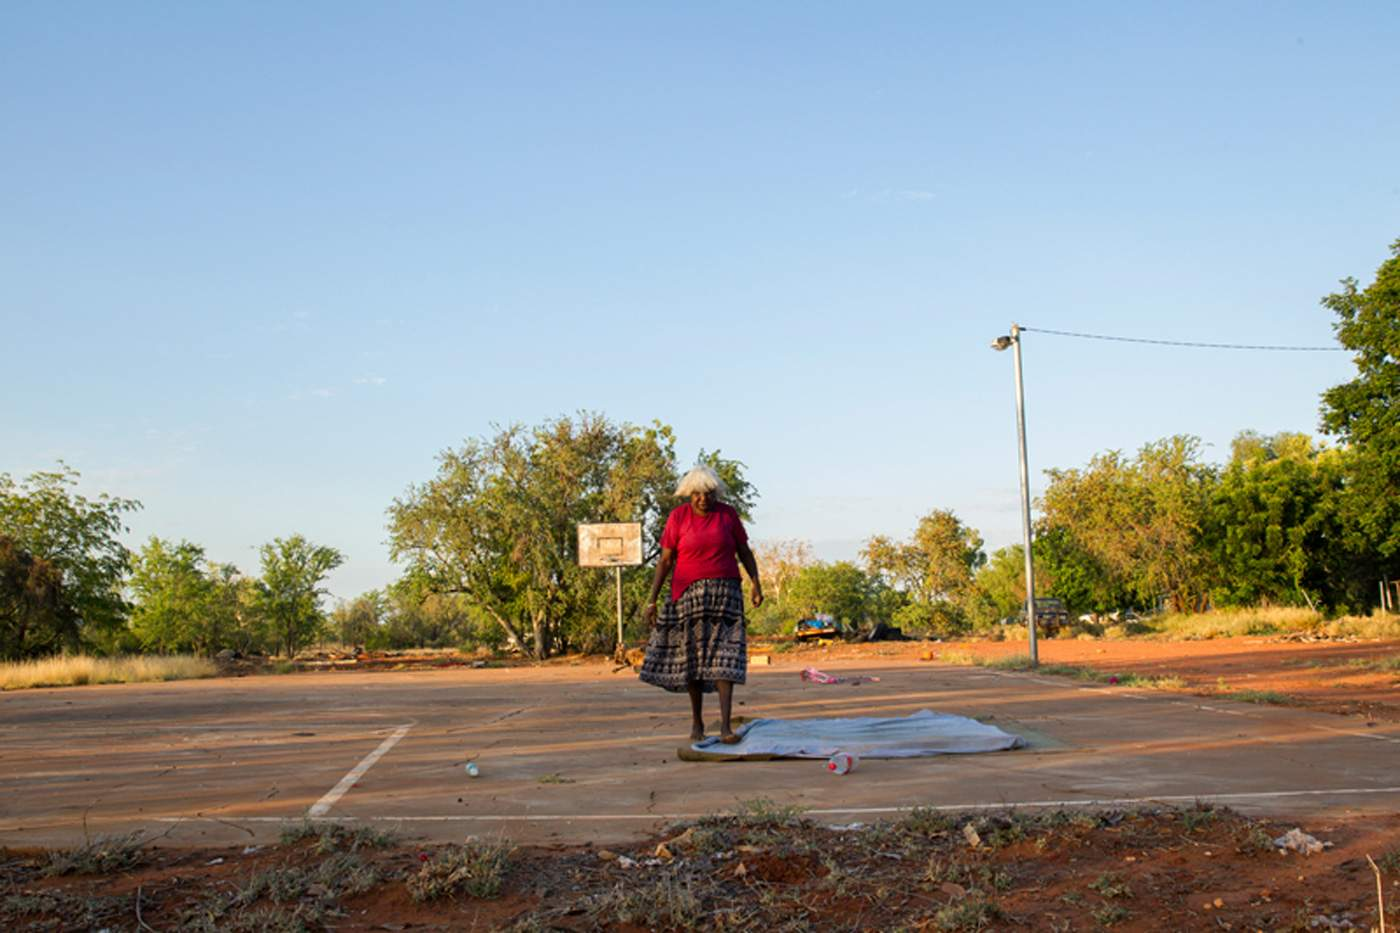 The Hidden Valley Nitv Secret Lives Of Stoves In Remote Australian Indigenous Communities Bernadette Williams Prepares A Place To Sit And Yarn Shade On Basketball Court